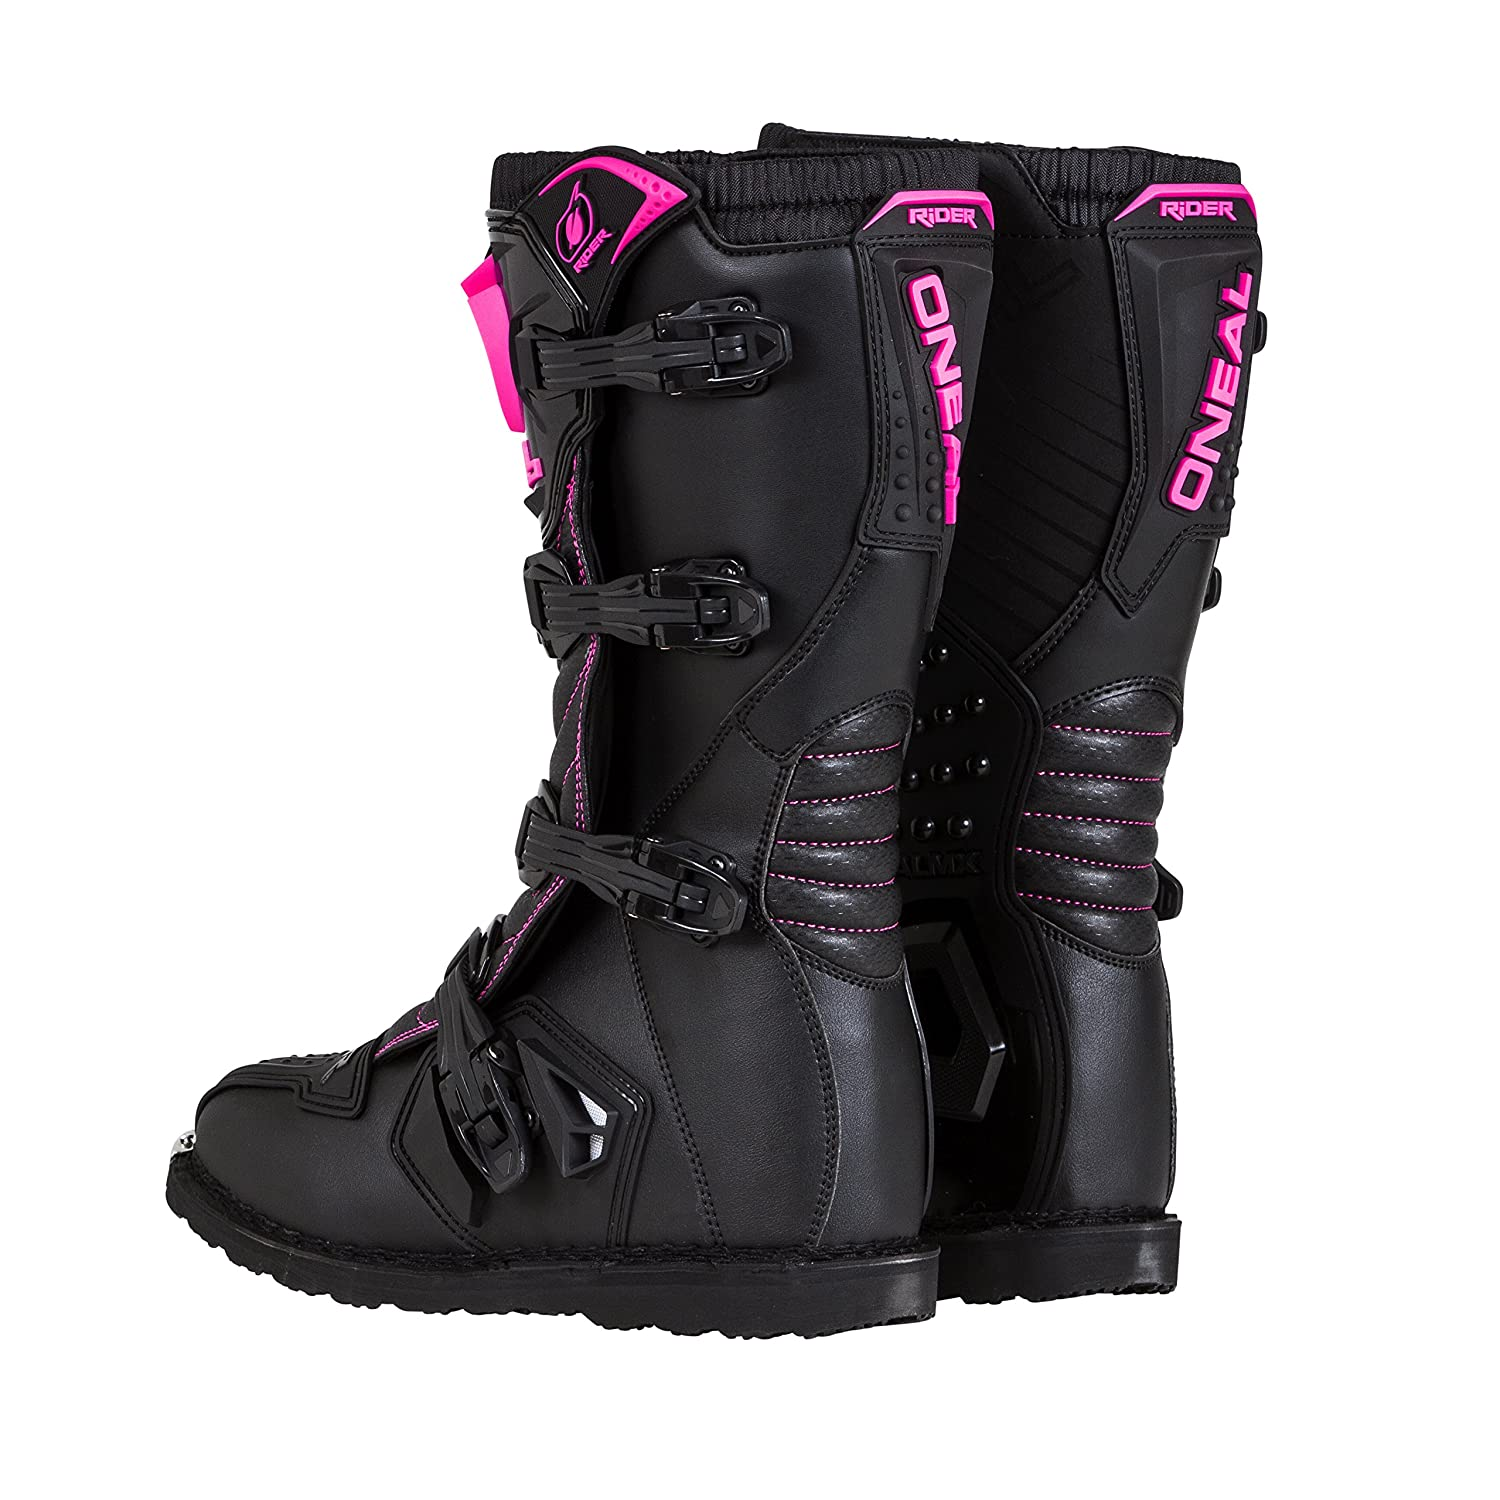 ONeal Womens New Logo Rider Boot Black//Pink, Size 6